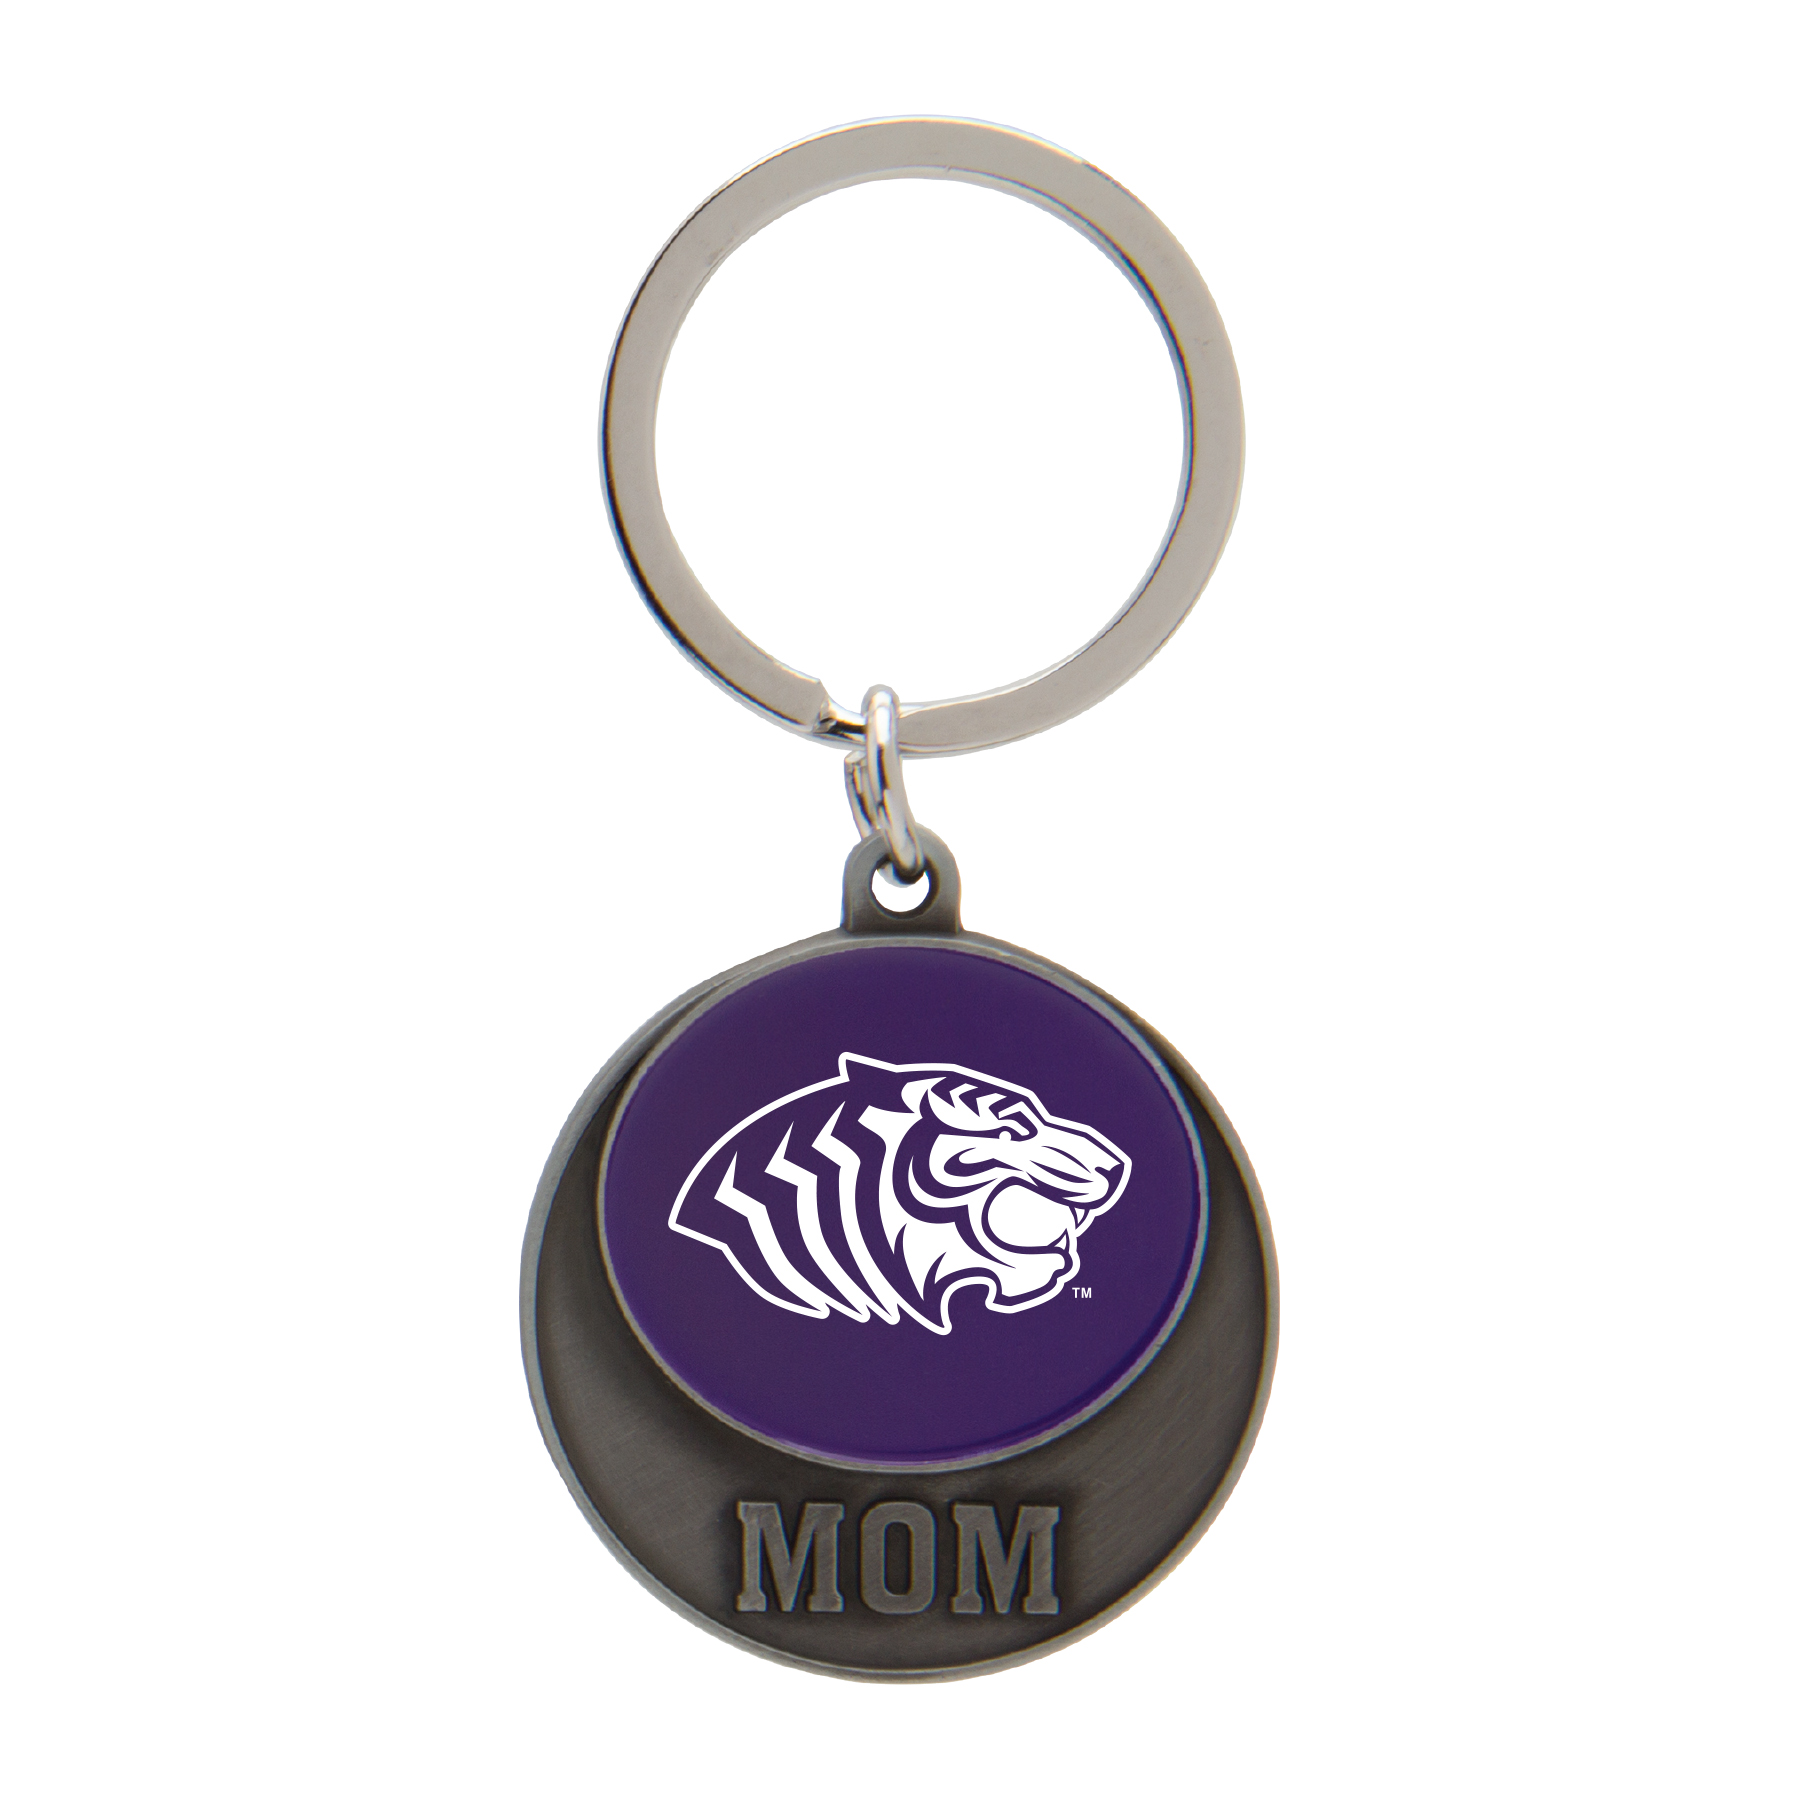 OUACHITA MOM KEYCHAIN